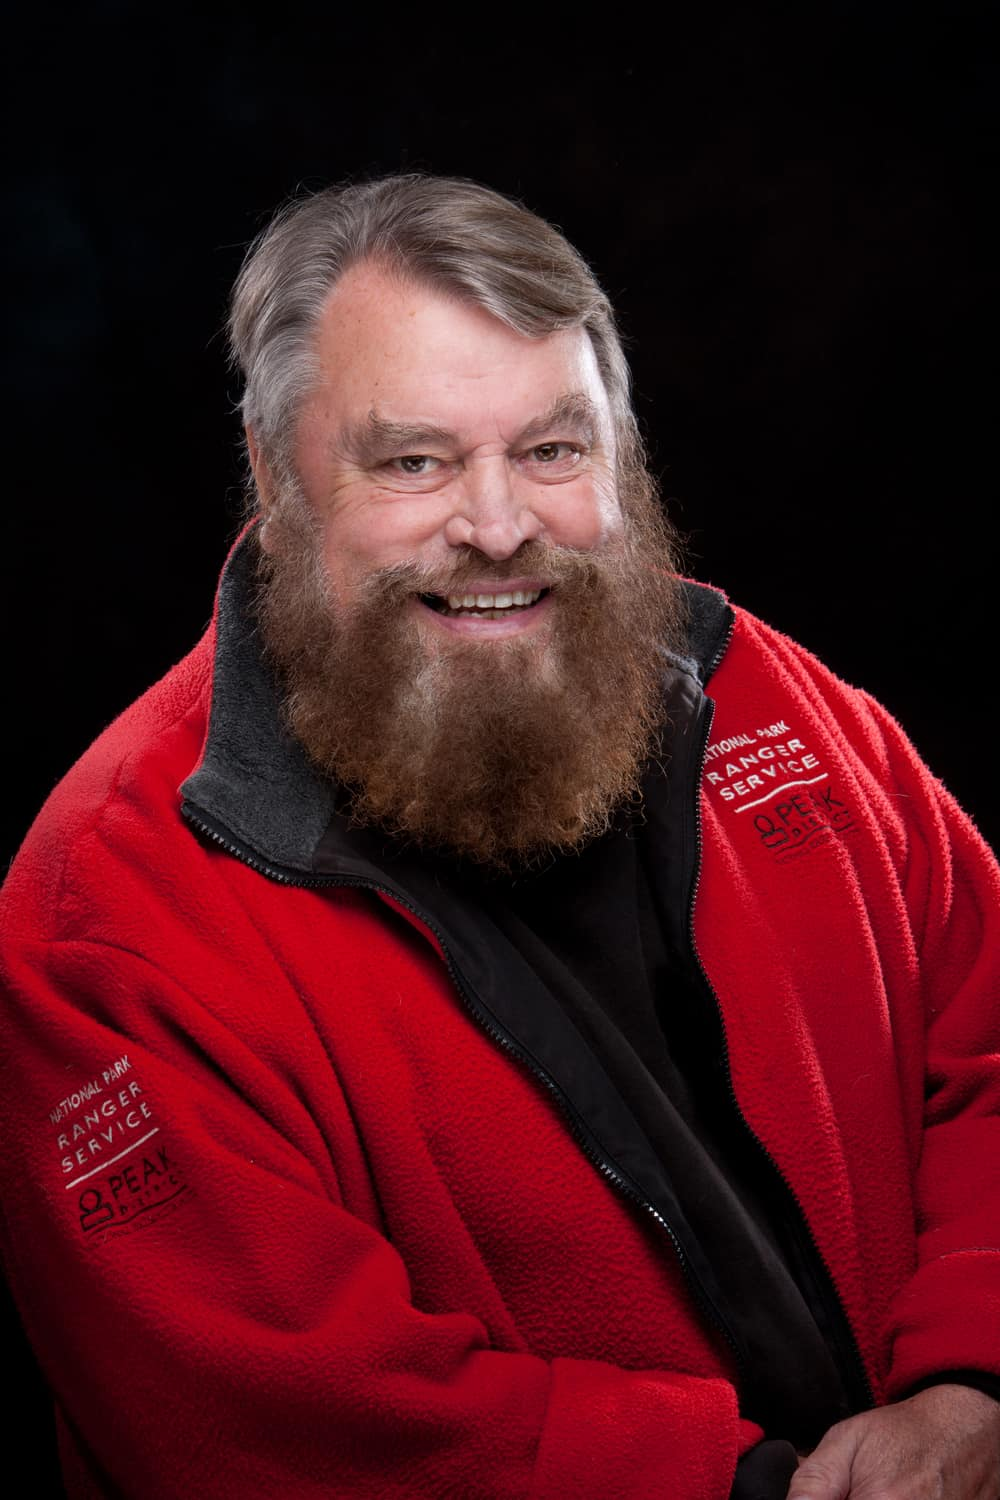 brian blessed wifebrian blessed peppa pig youtube, brian blessed henry v, brian blessed qi, brian blessed robert baratheon, brian blessed star wars, brian blessed voice, brian blessed laugh, brian blessed photos, brian blessed hawkwind, brian blessed, brian blessed everest, brian blessed flash gordon, brian blessed peppa pig, brian blessed blackadder, brian blessed wiki, brian blessed wife, brian blessed biography, brian blessed cosmonaut, brian blessed twitter, brian blessed actor